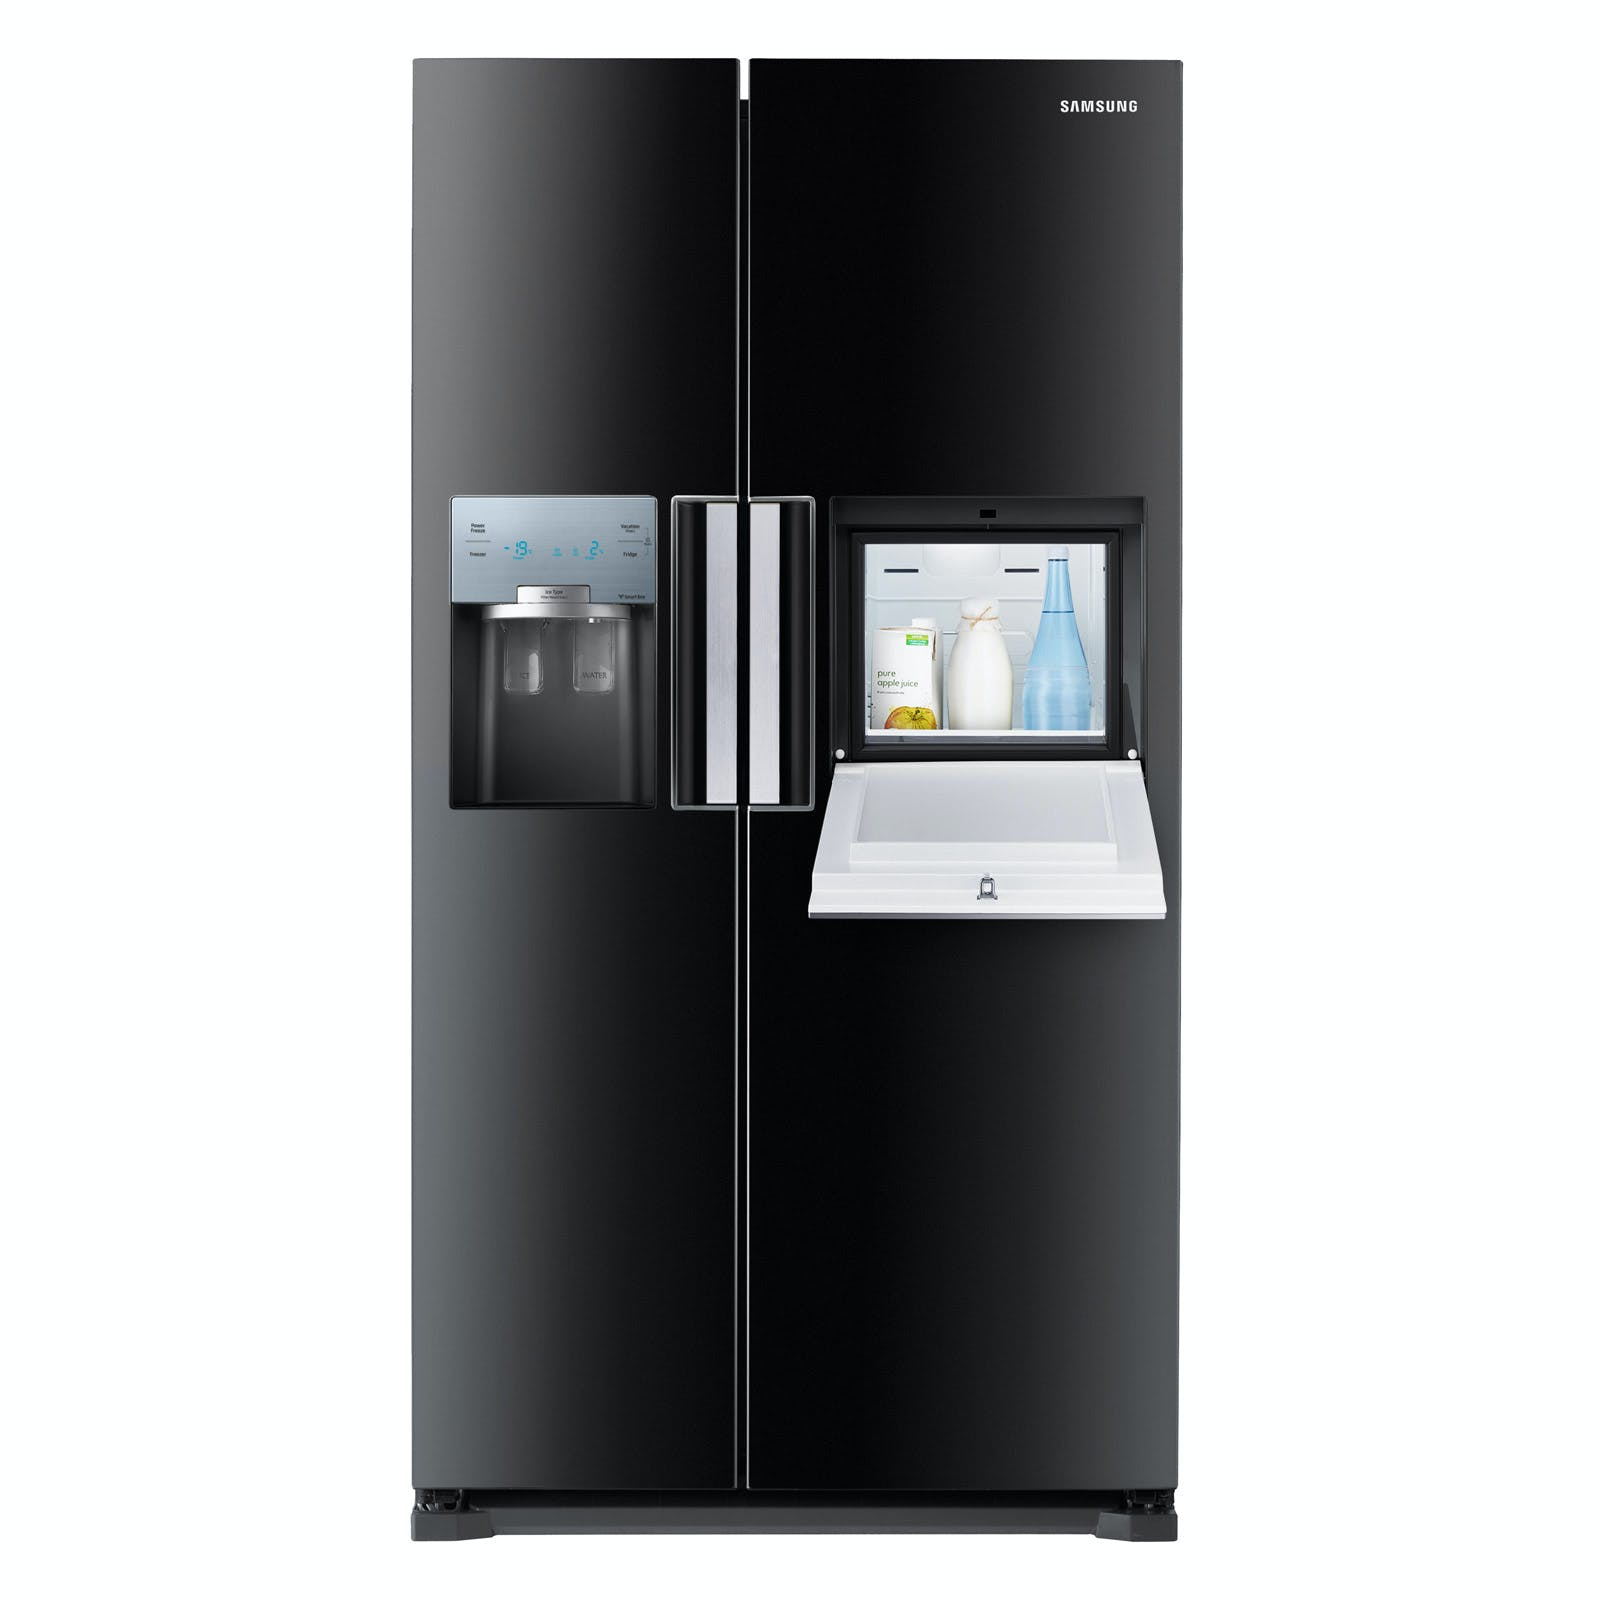 Samsung Rs7677fhcbc American Fridge Freezer In Gloss Black